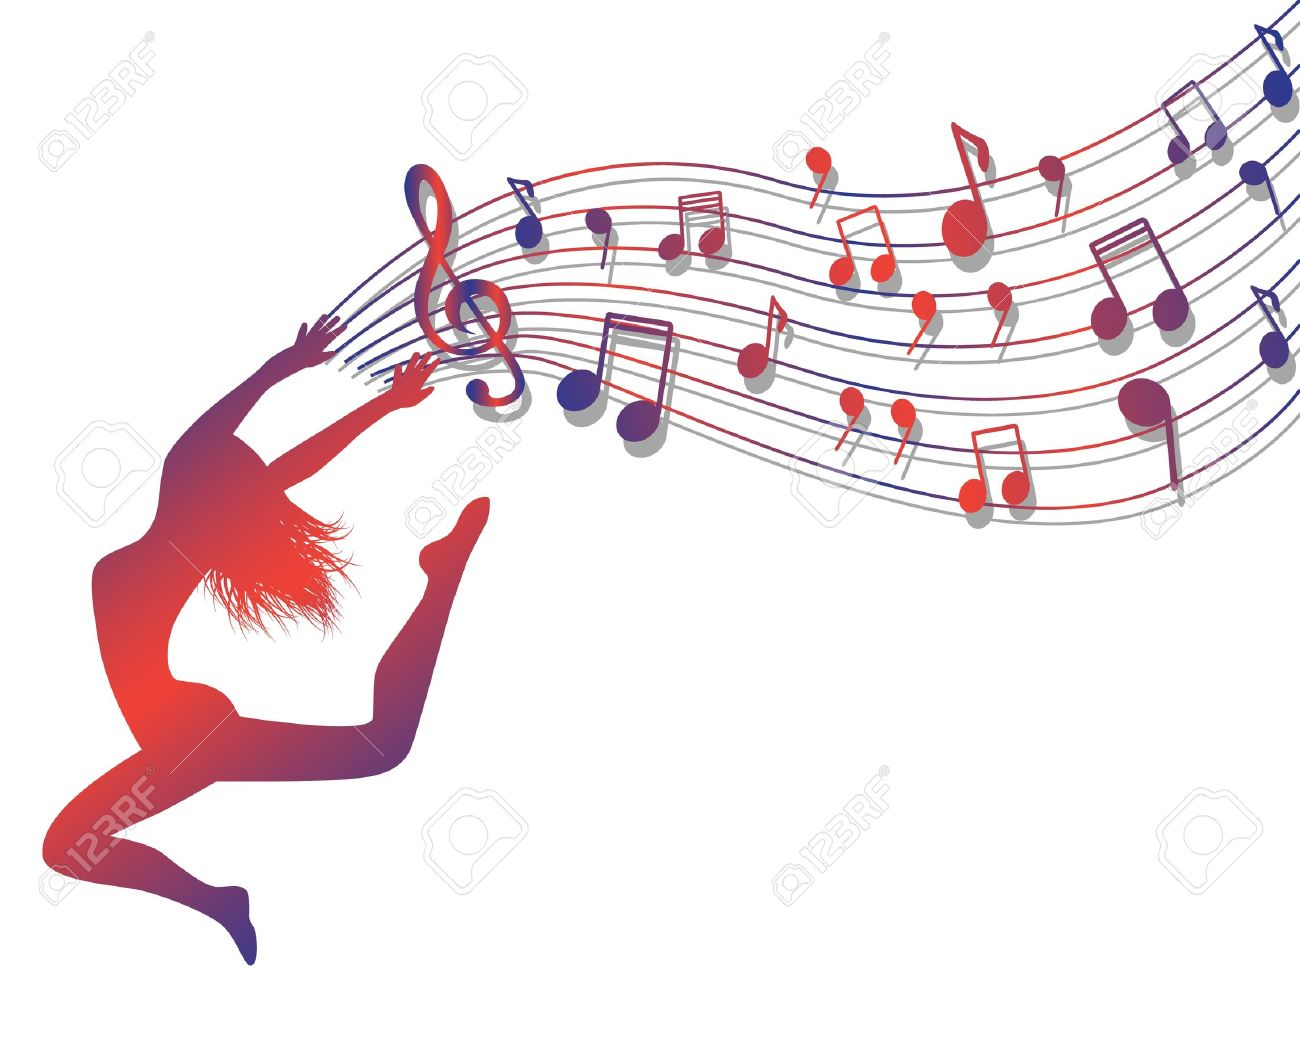 Female silhouette jumping. Woman holding a musical lineup with notes and treble clef - 18236194